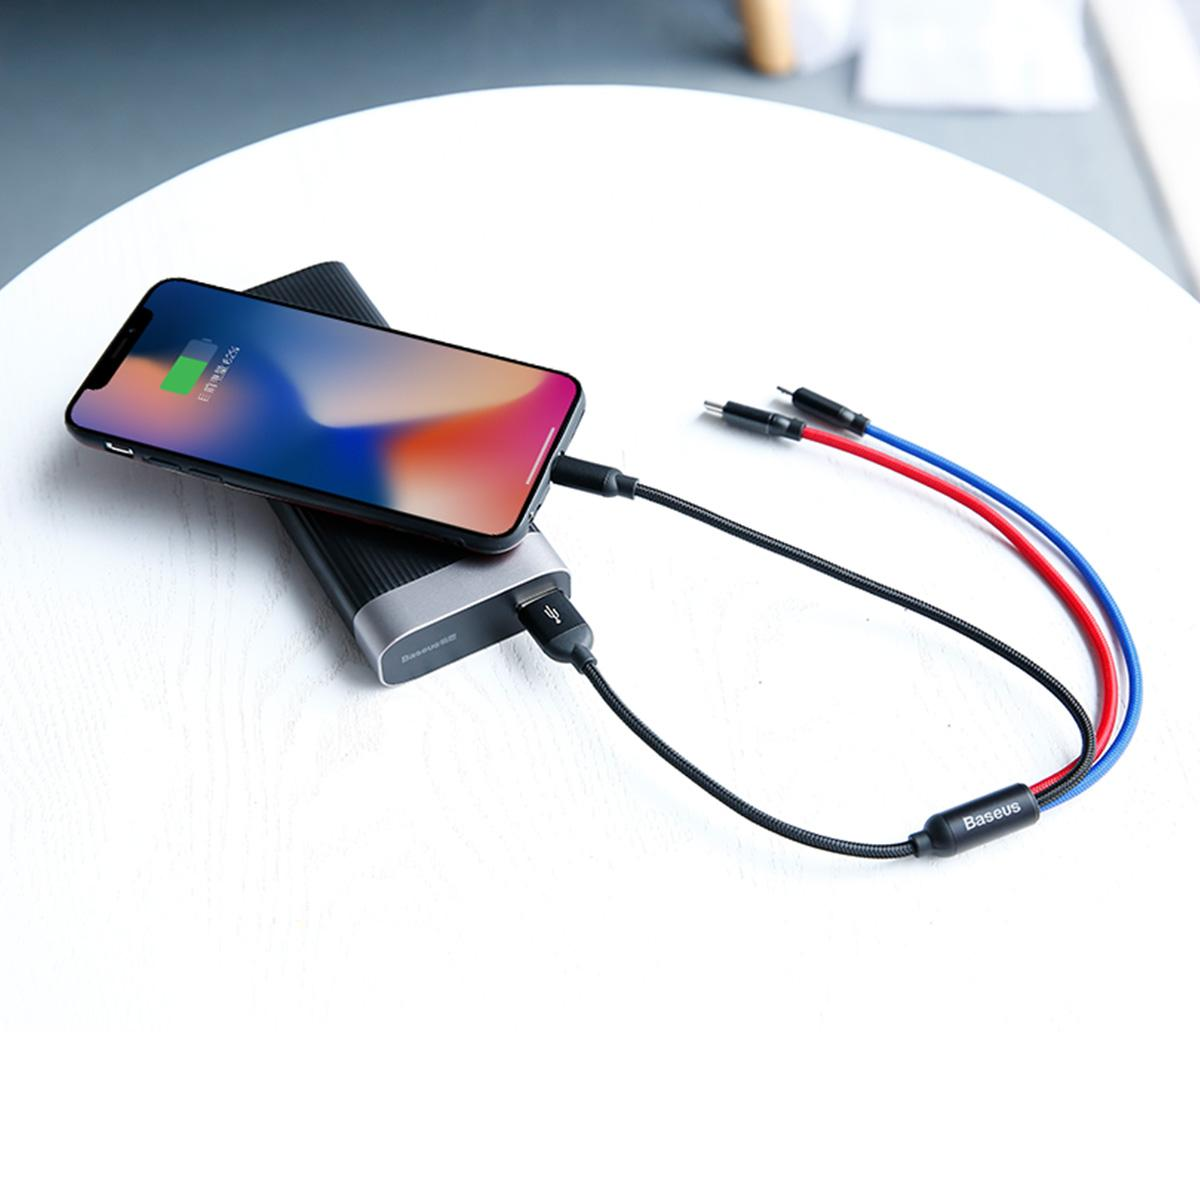 Baseus Three Primary Color 3in1 3.5A Fast Charging Cable Samsung Galaxy S9 S8 iPhone Xiaomi 1.2m